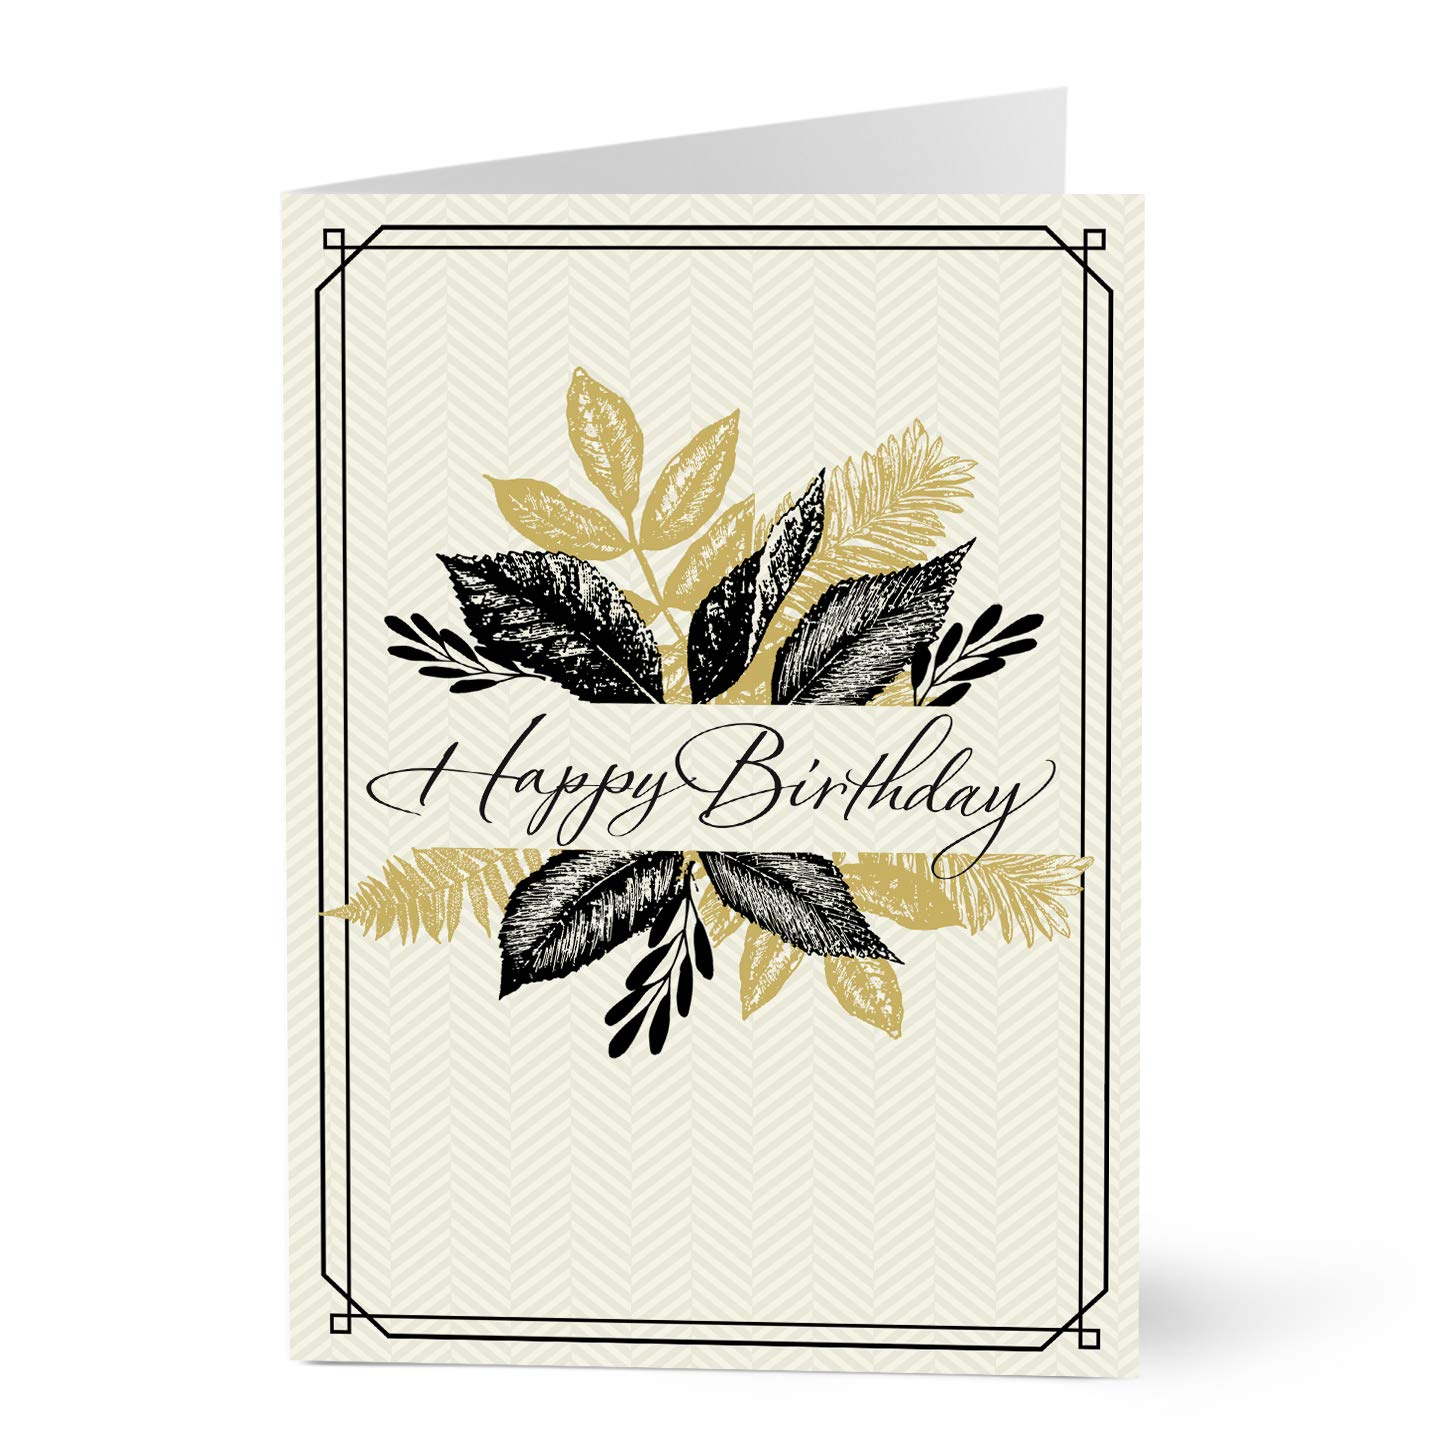 Hallmark Business Birthday Card for Customers (Happy Birthday Leaves) (Pack of 25 Greeting Cards)